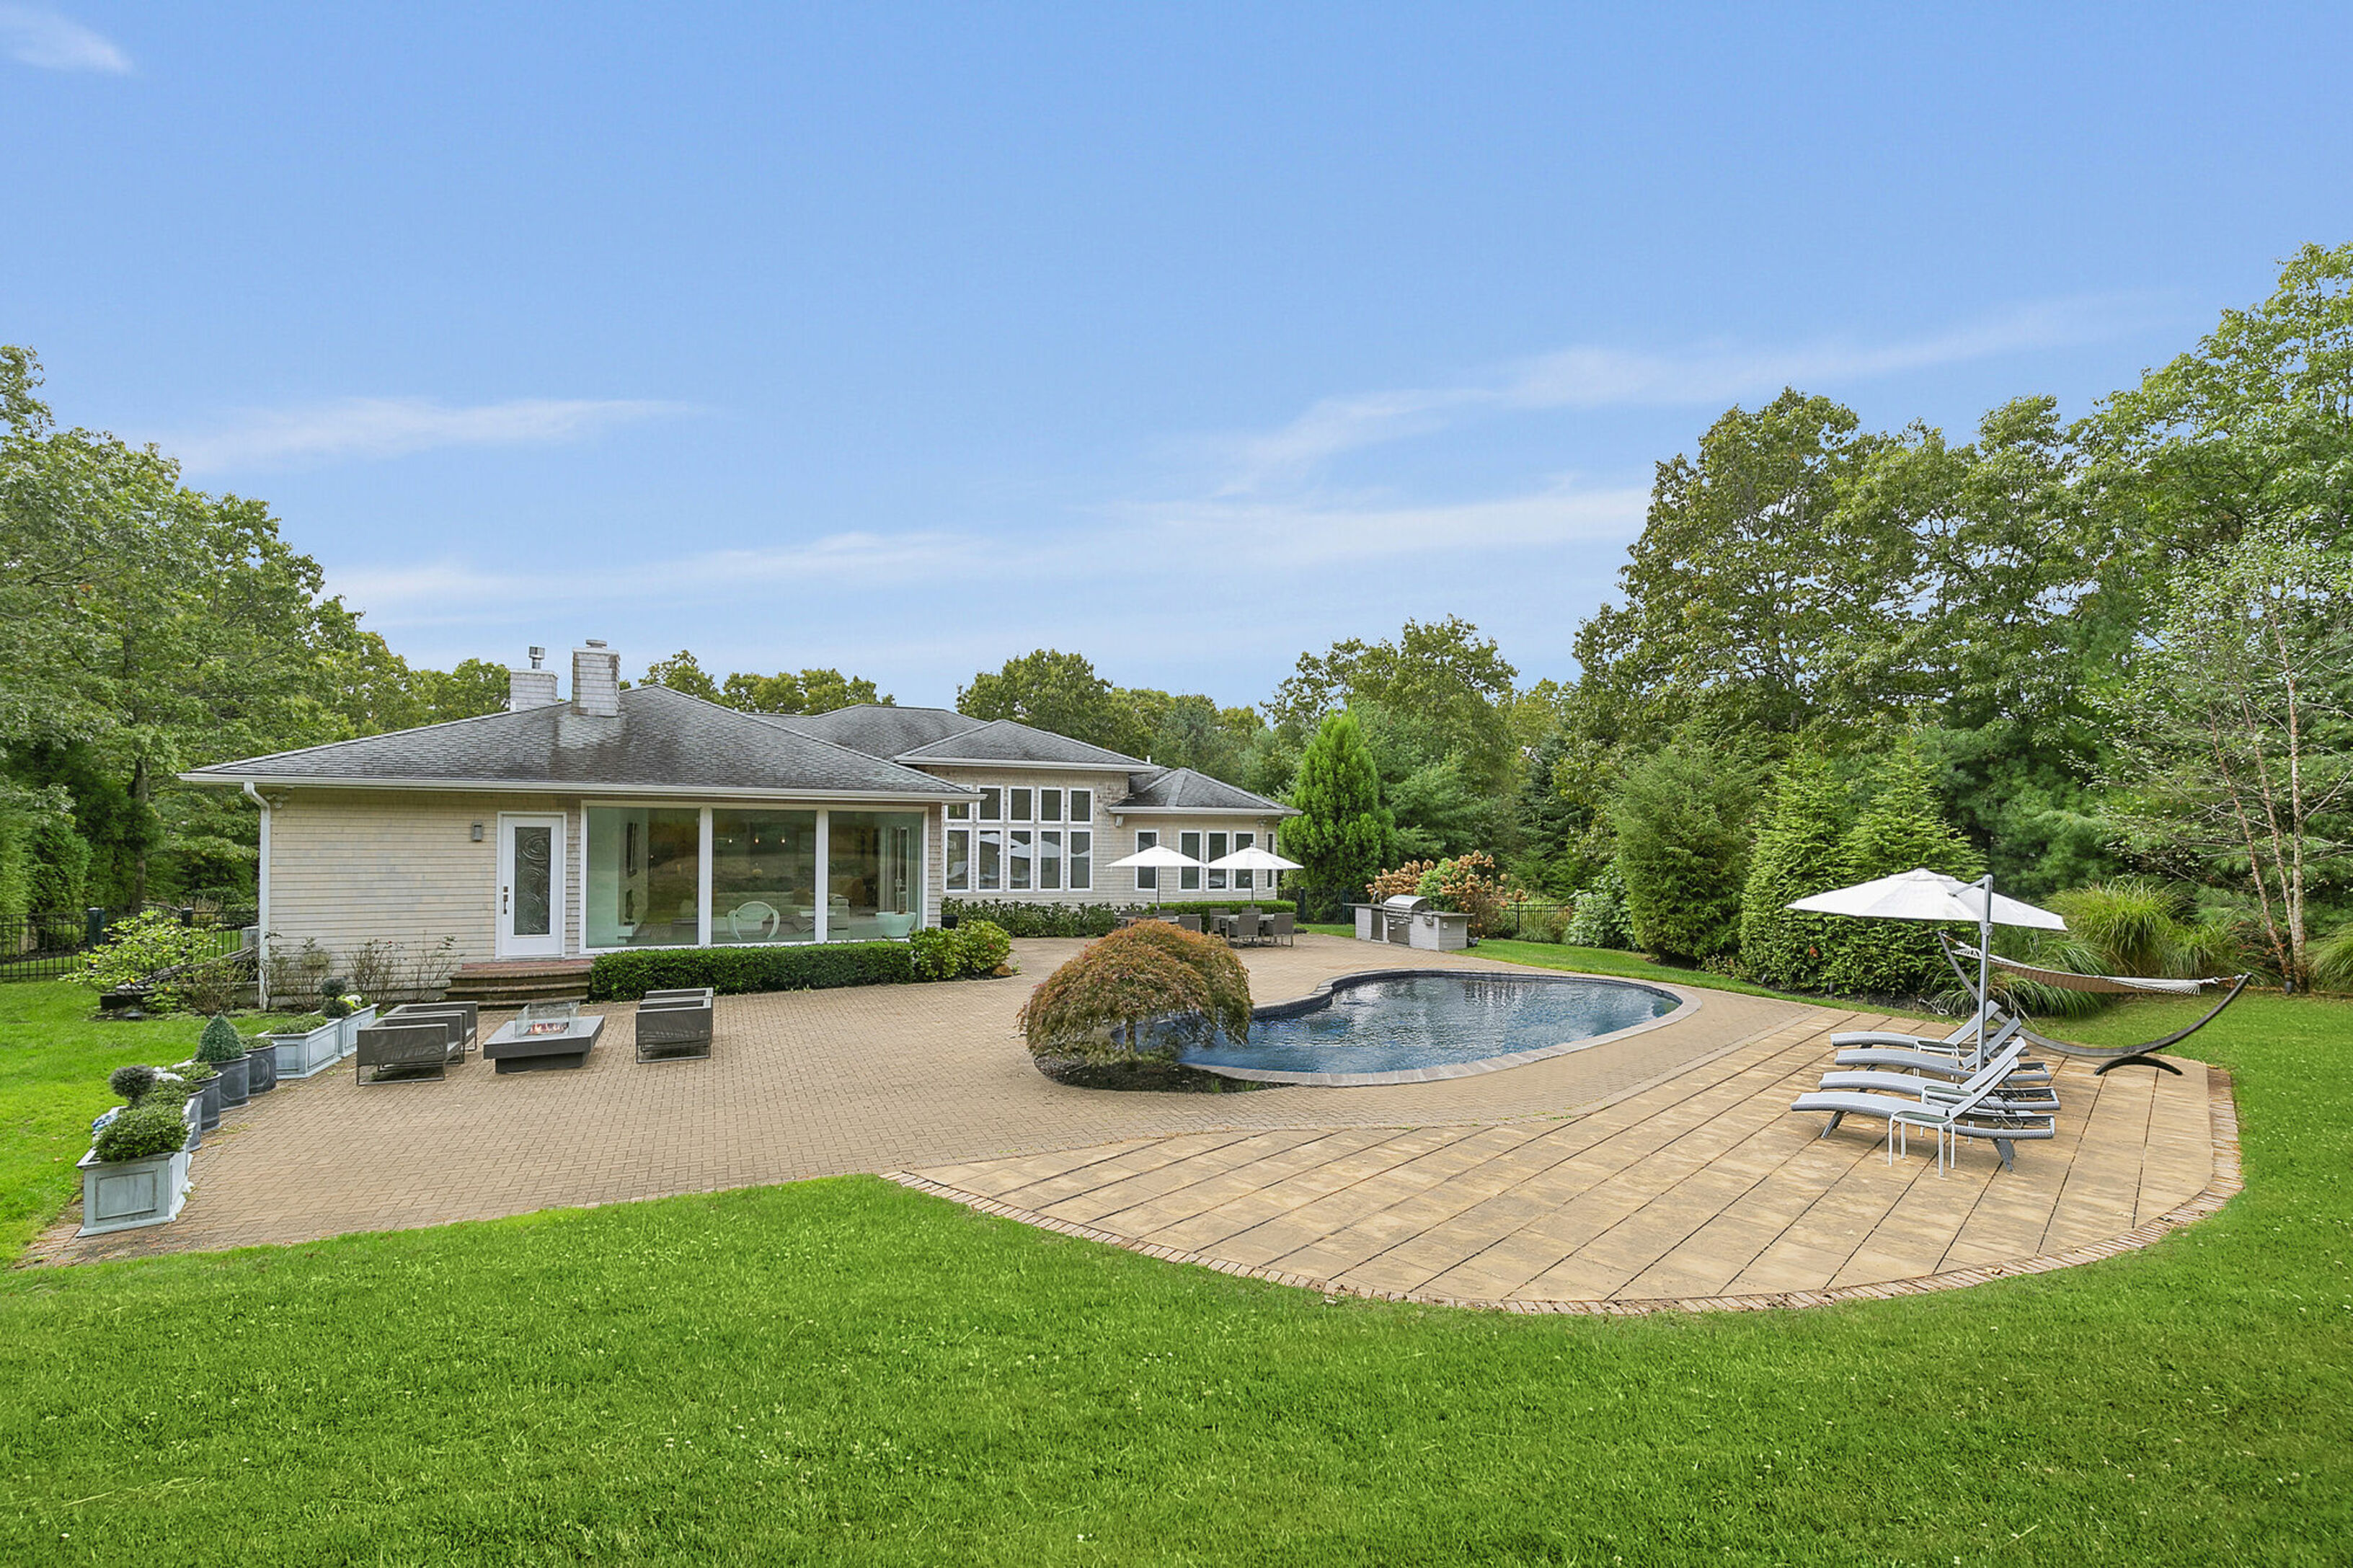 162 Chardonnay Dr - East Quogue, New York